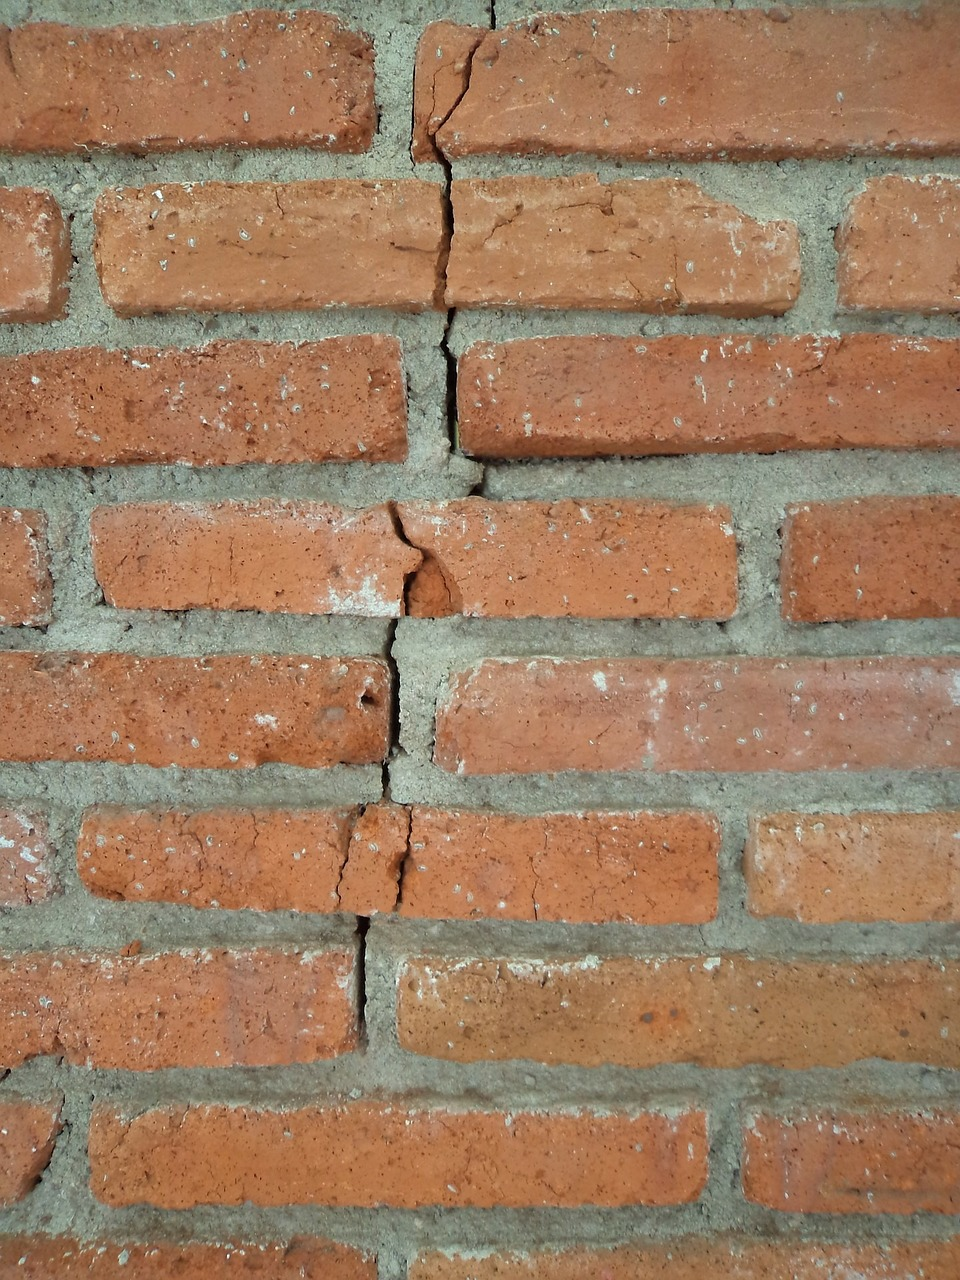 picture of cracked brick for article on foundation problems while selling a home